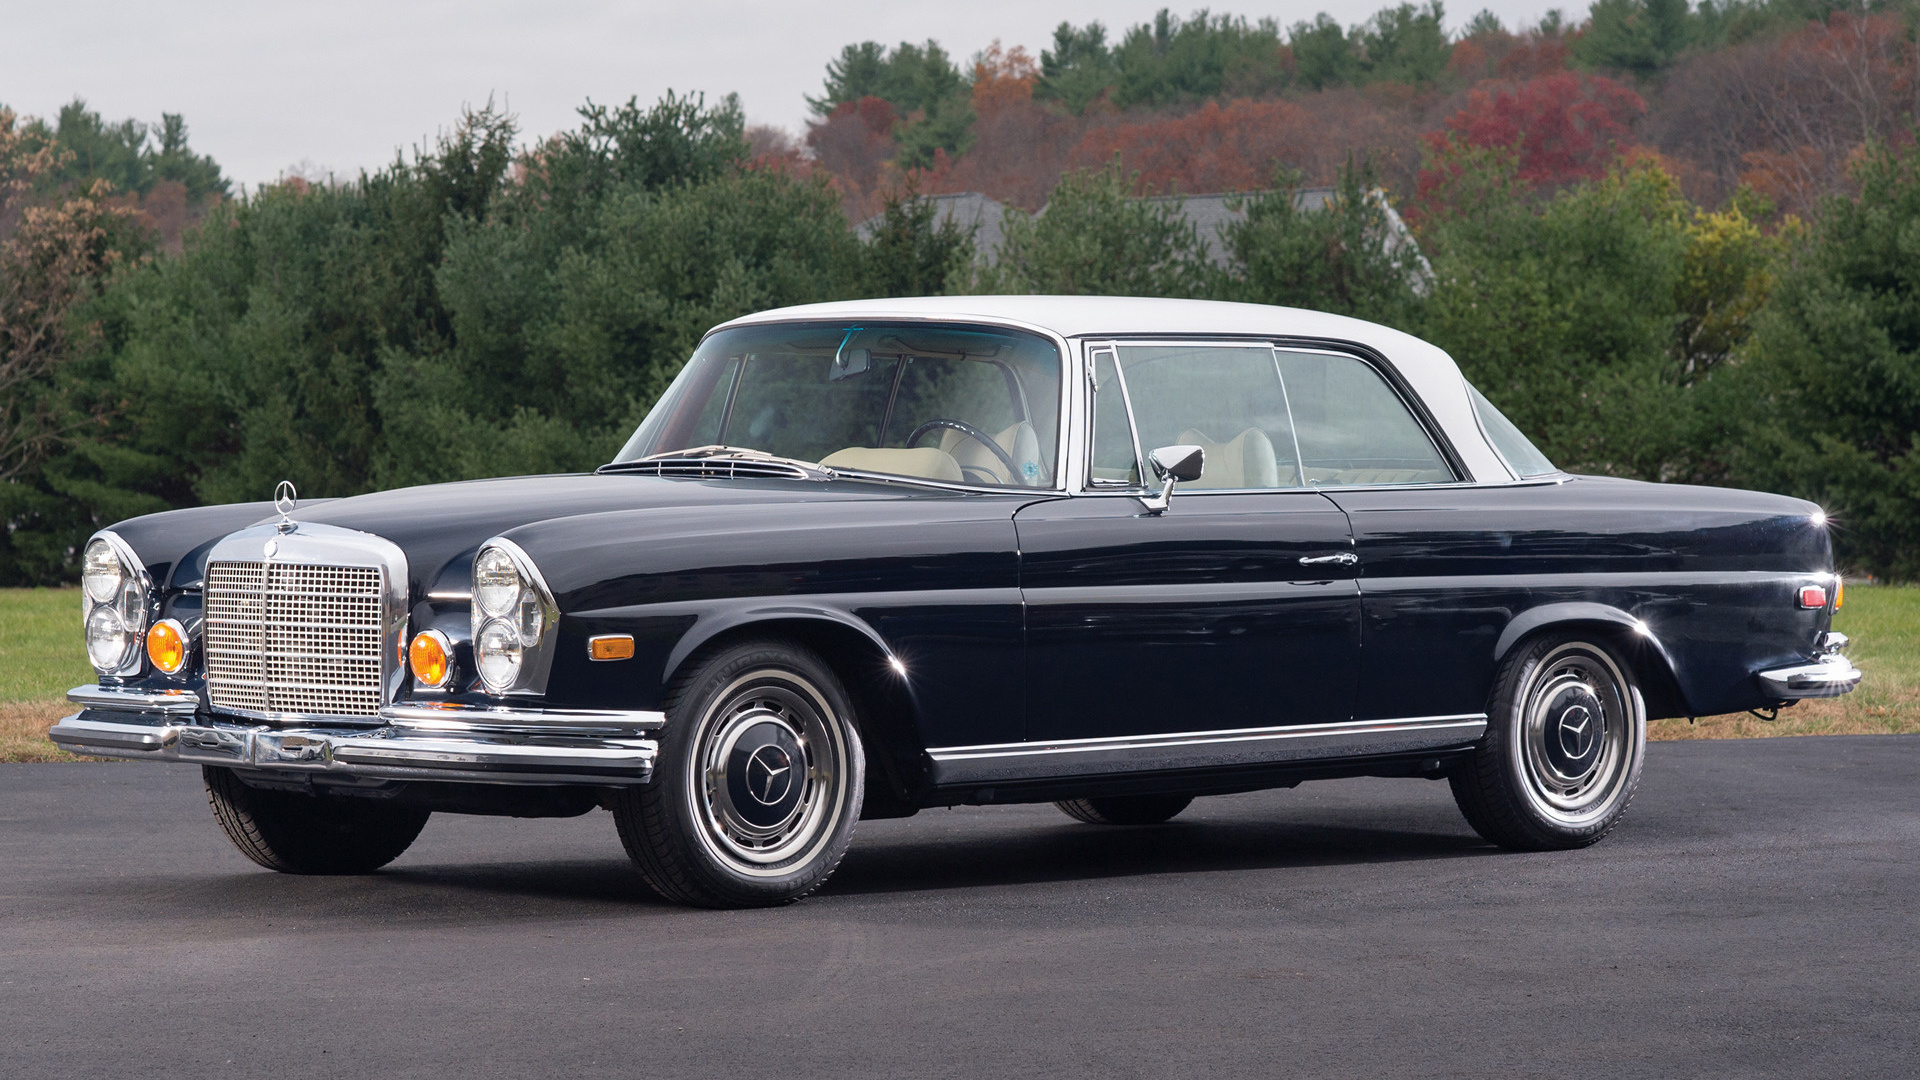 1969 mercedes benz 280 se coupe us wallpapers and hd. Black Bedroom Furniture Sets. Home Design Ideas